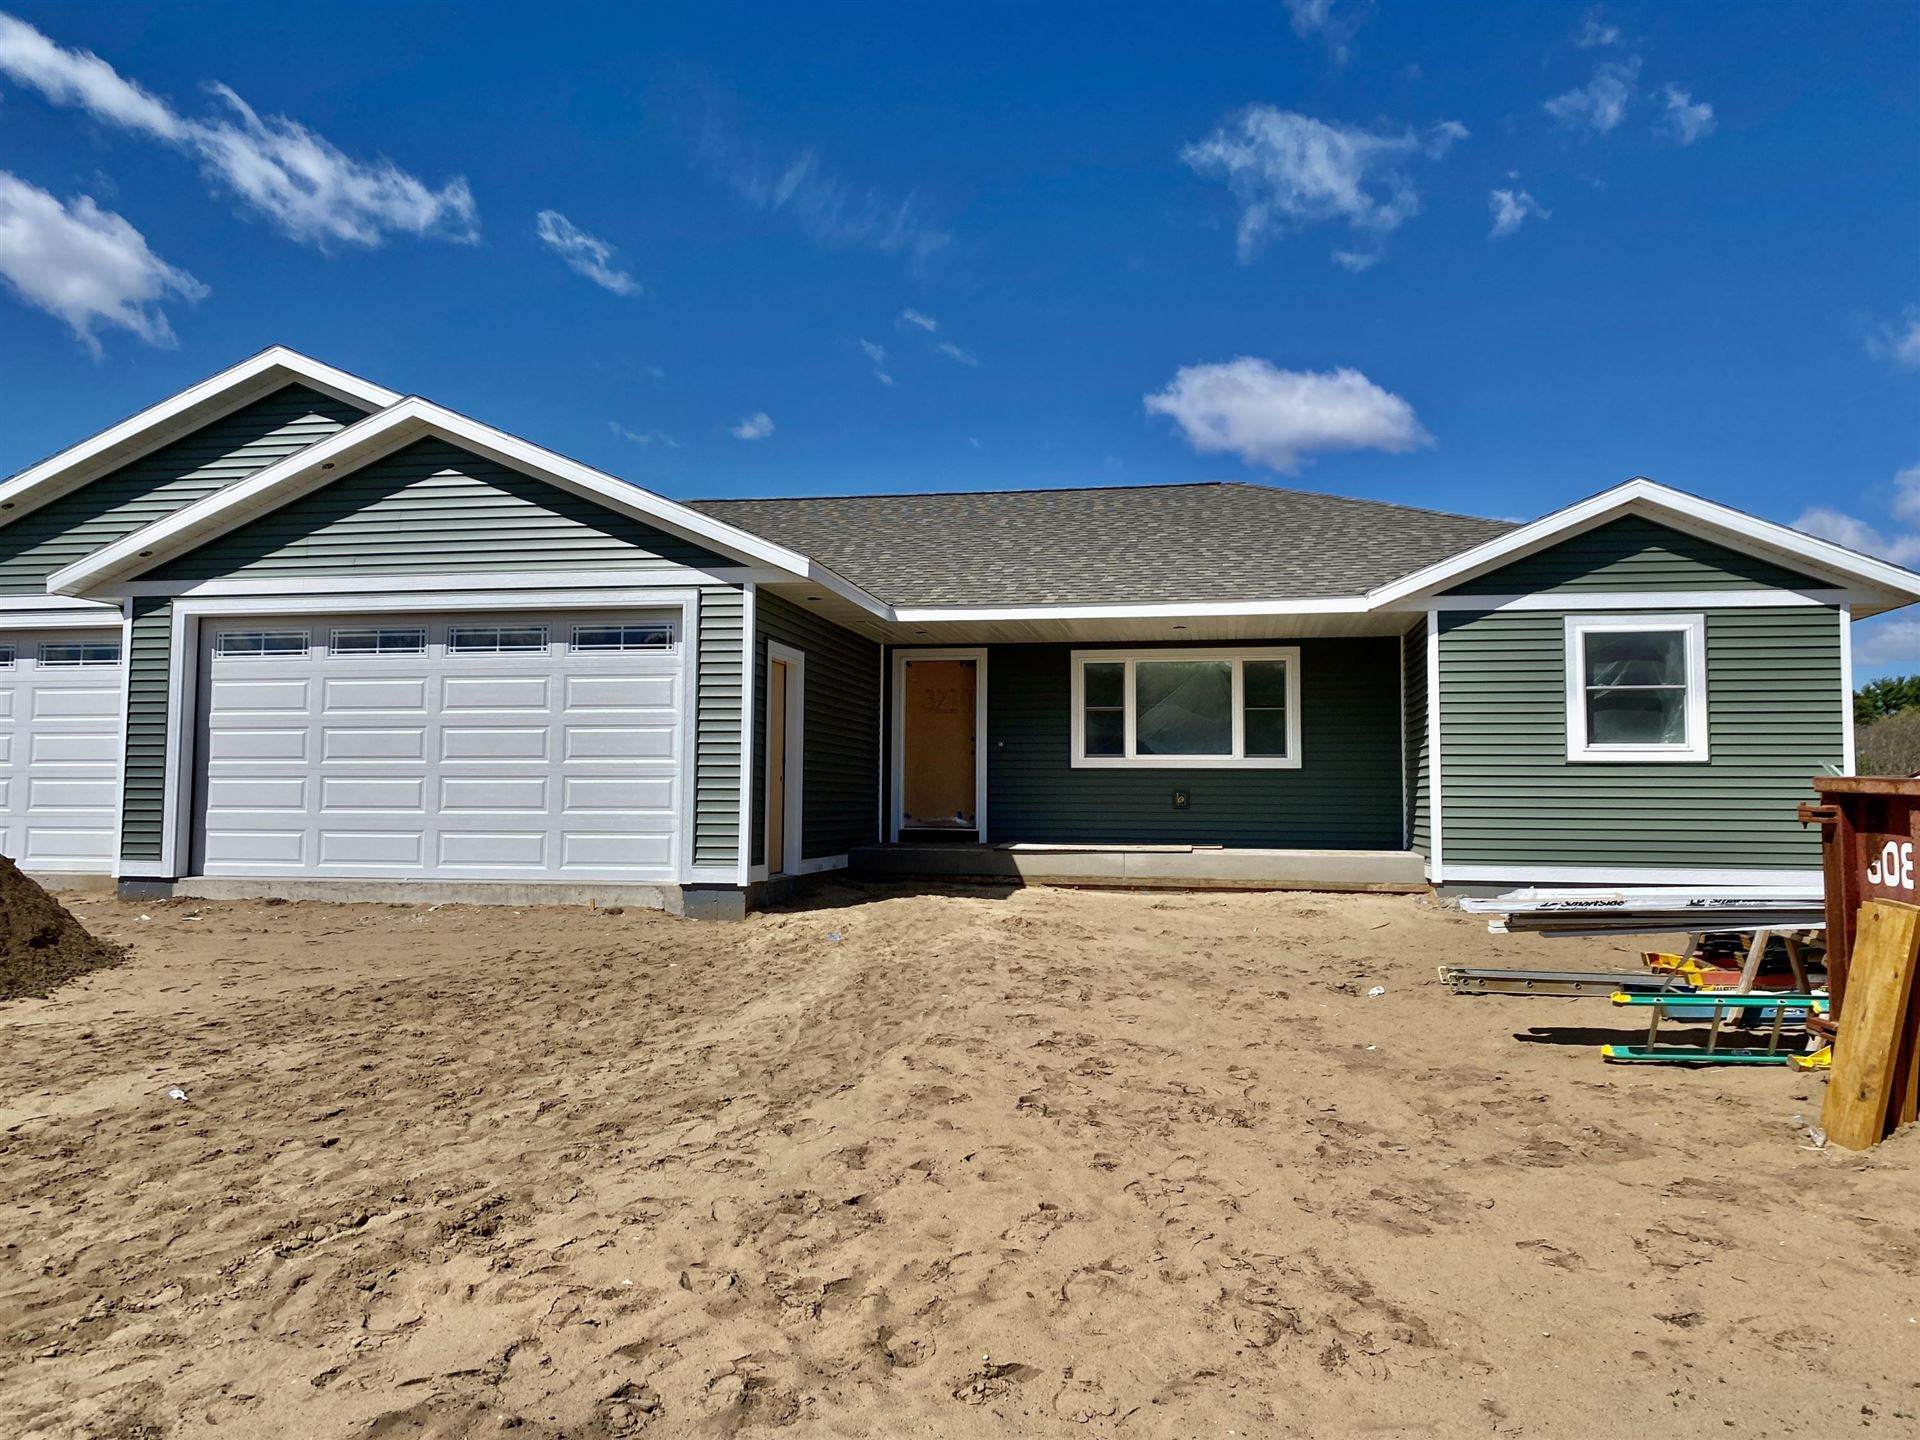 1906 McGilvray Way, Holmen, WI 54636 - MLS#: 1728761